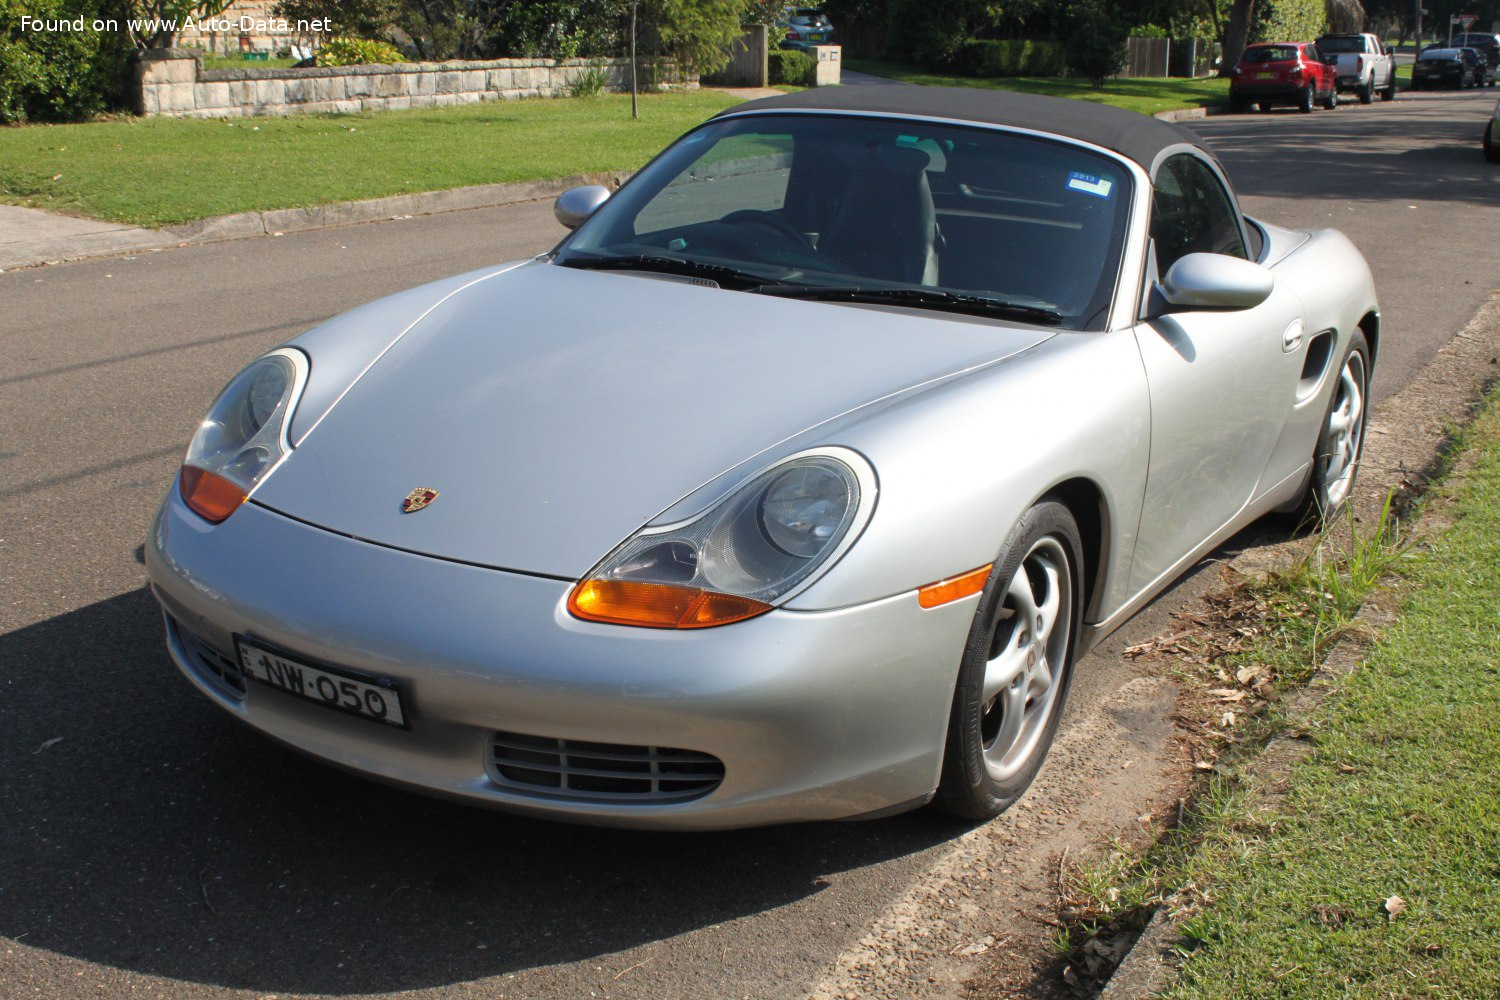 1999 Porsche Boxster 986 2 7 220 Hp Technical Specs Data Fuel Consumption Dimensions